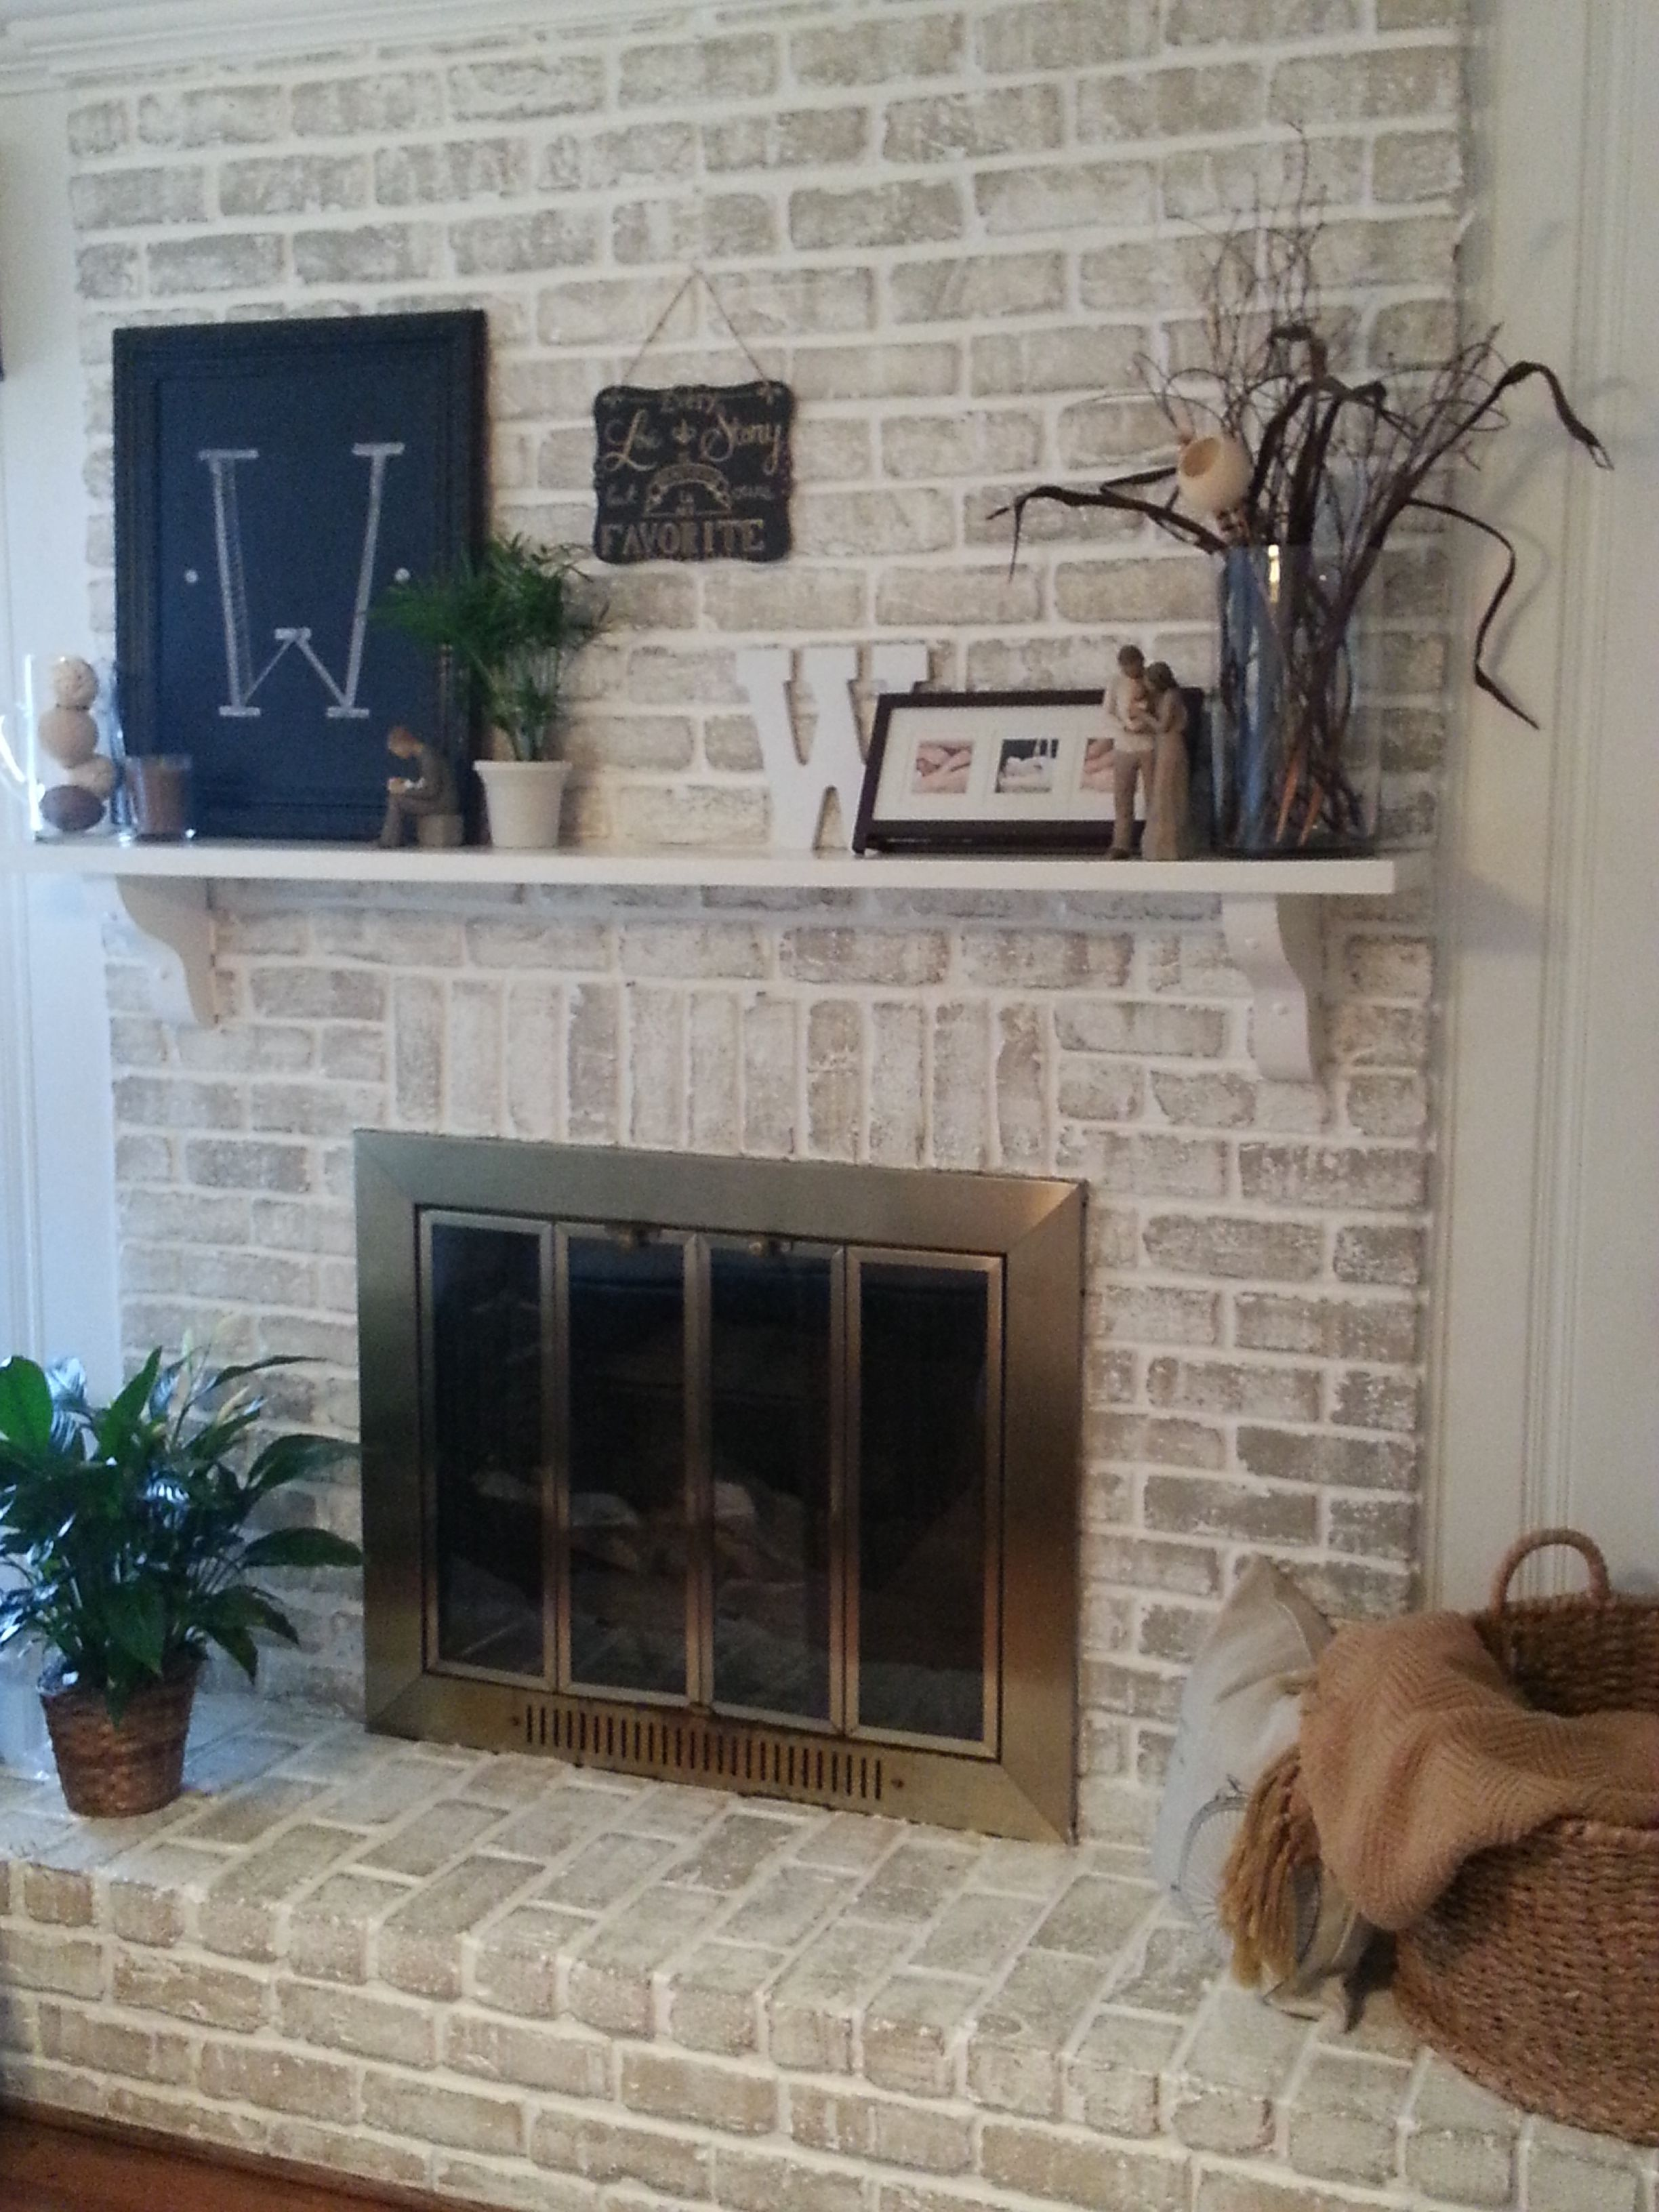 20 Fireplace Makeover How To Get A Whitewashed Look On A Fireplace Already Painted White